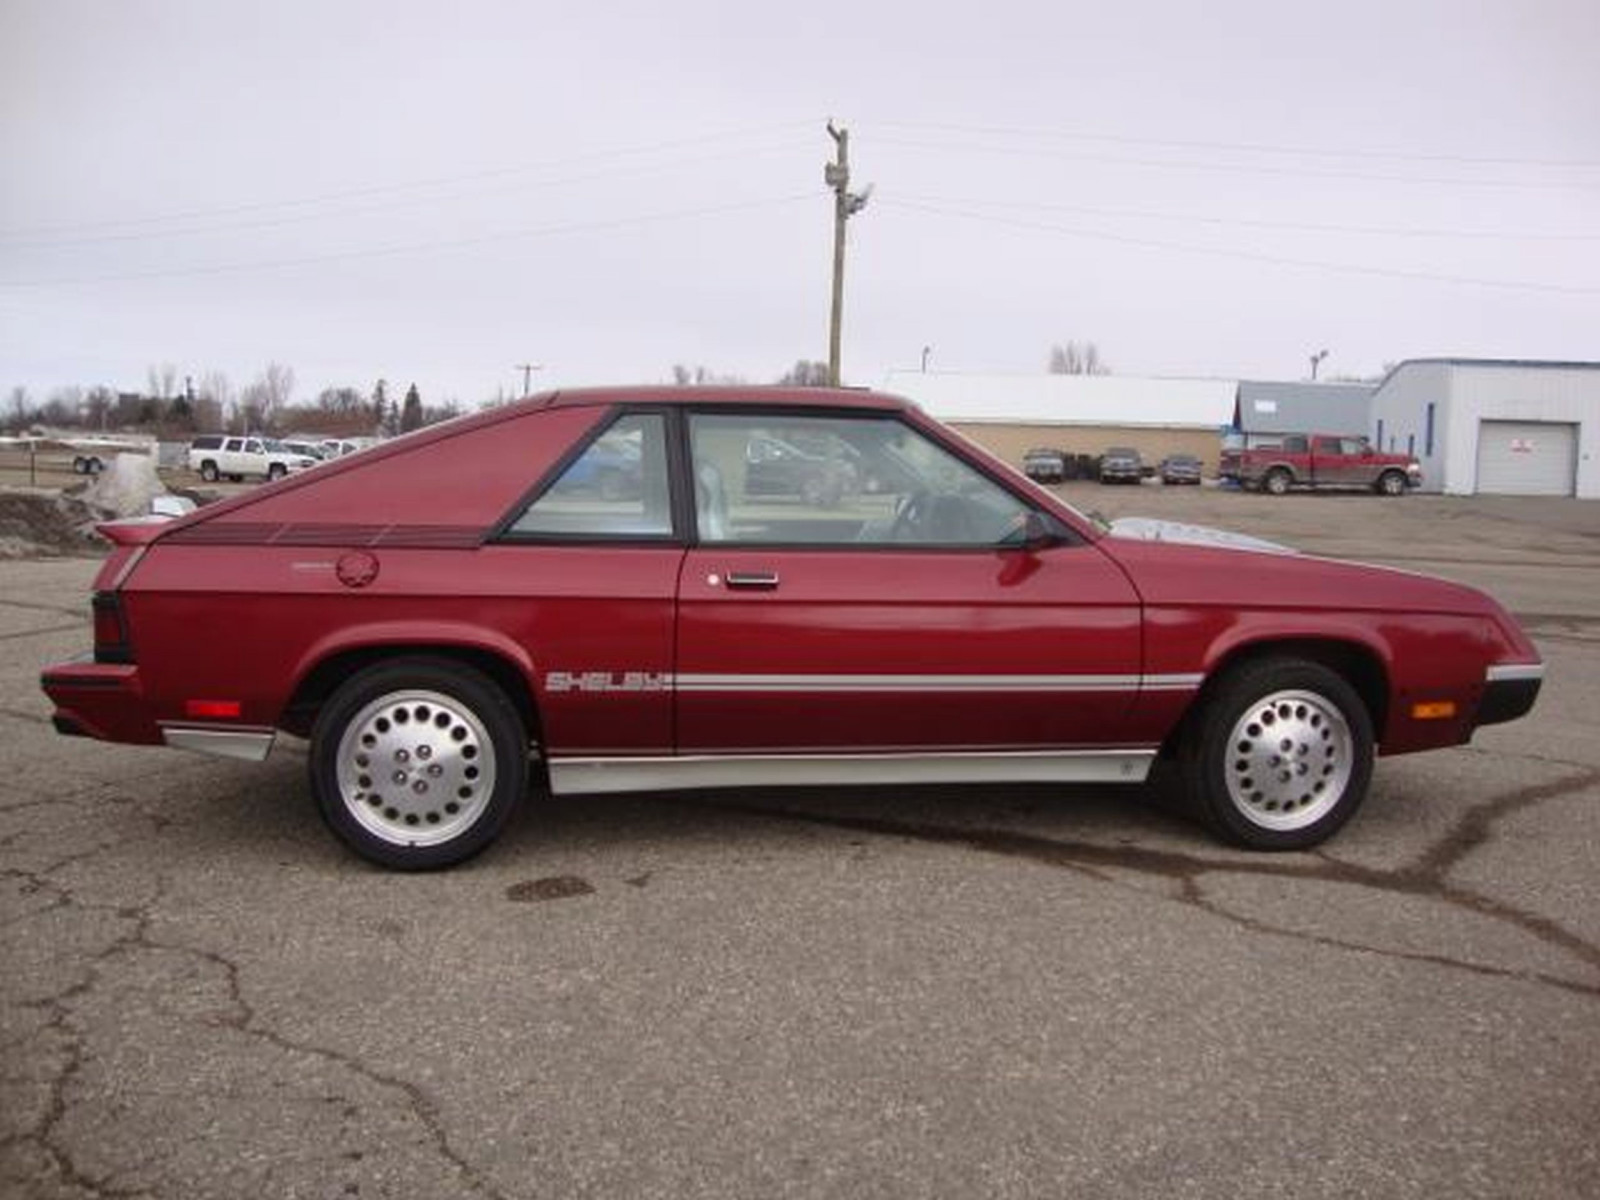 New 1987 Dodge Shelby Charger - Image 8